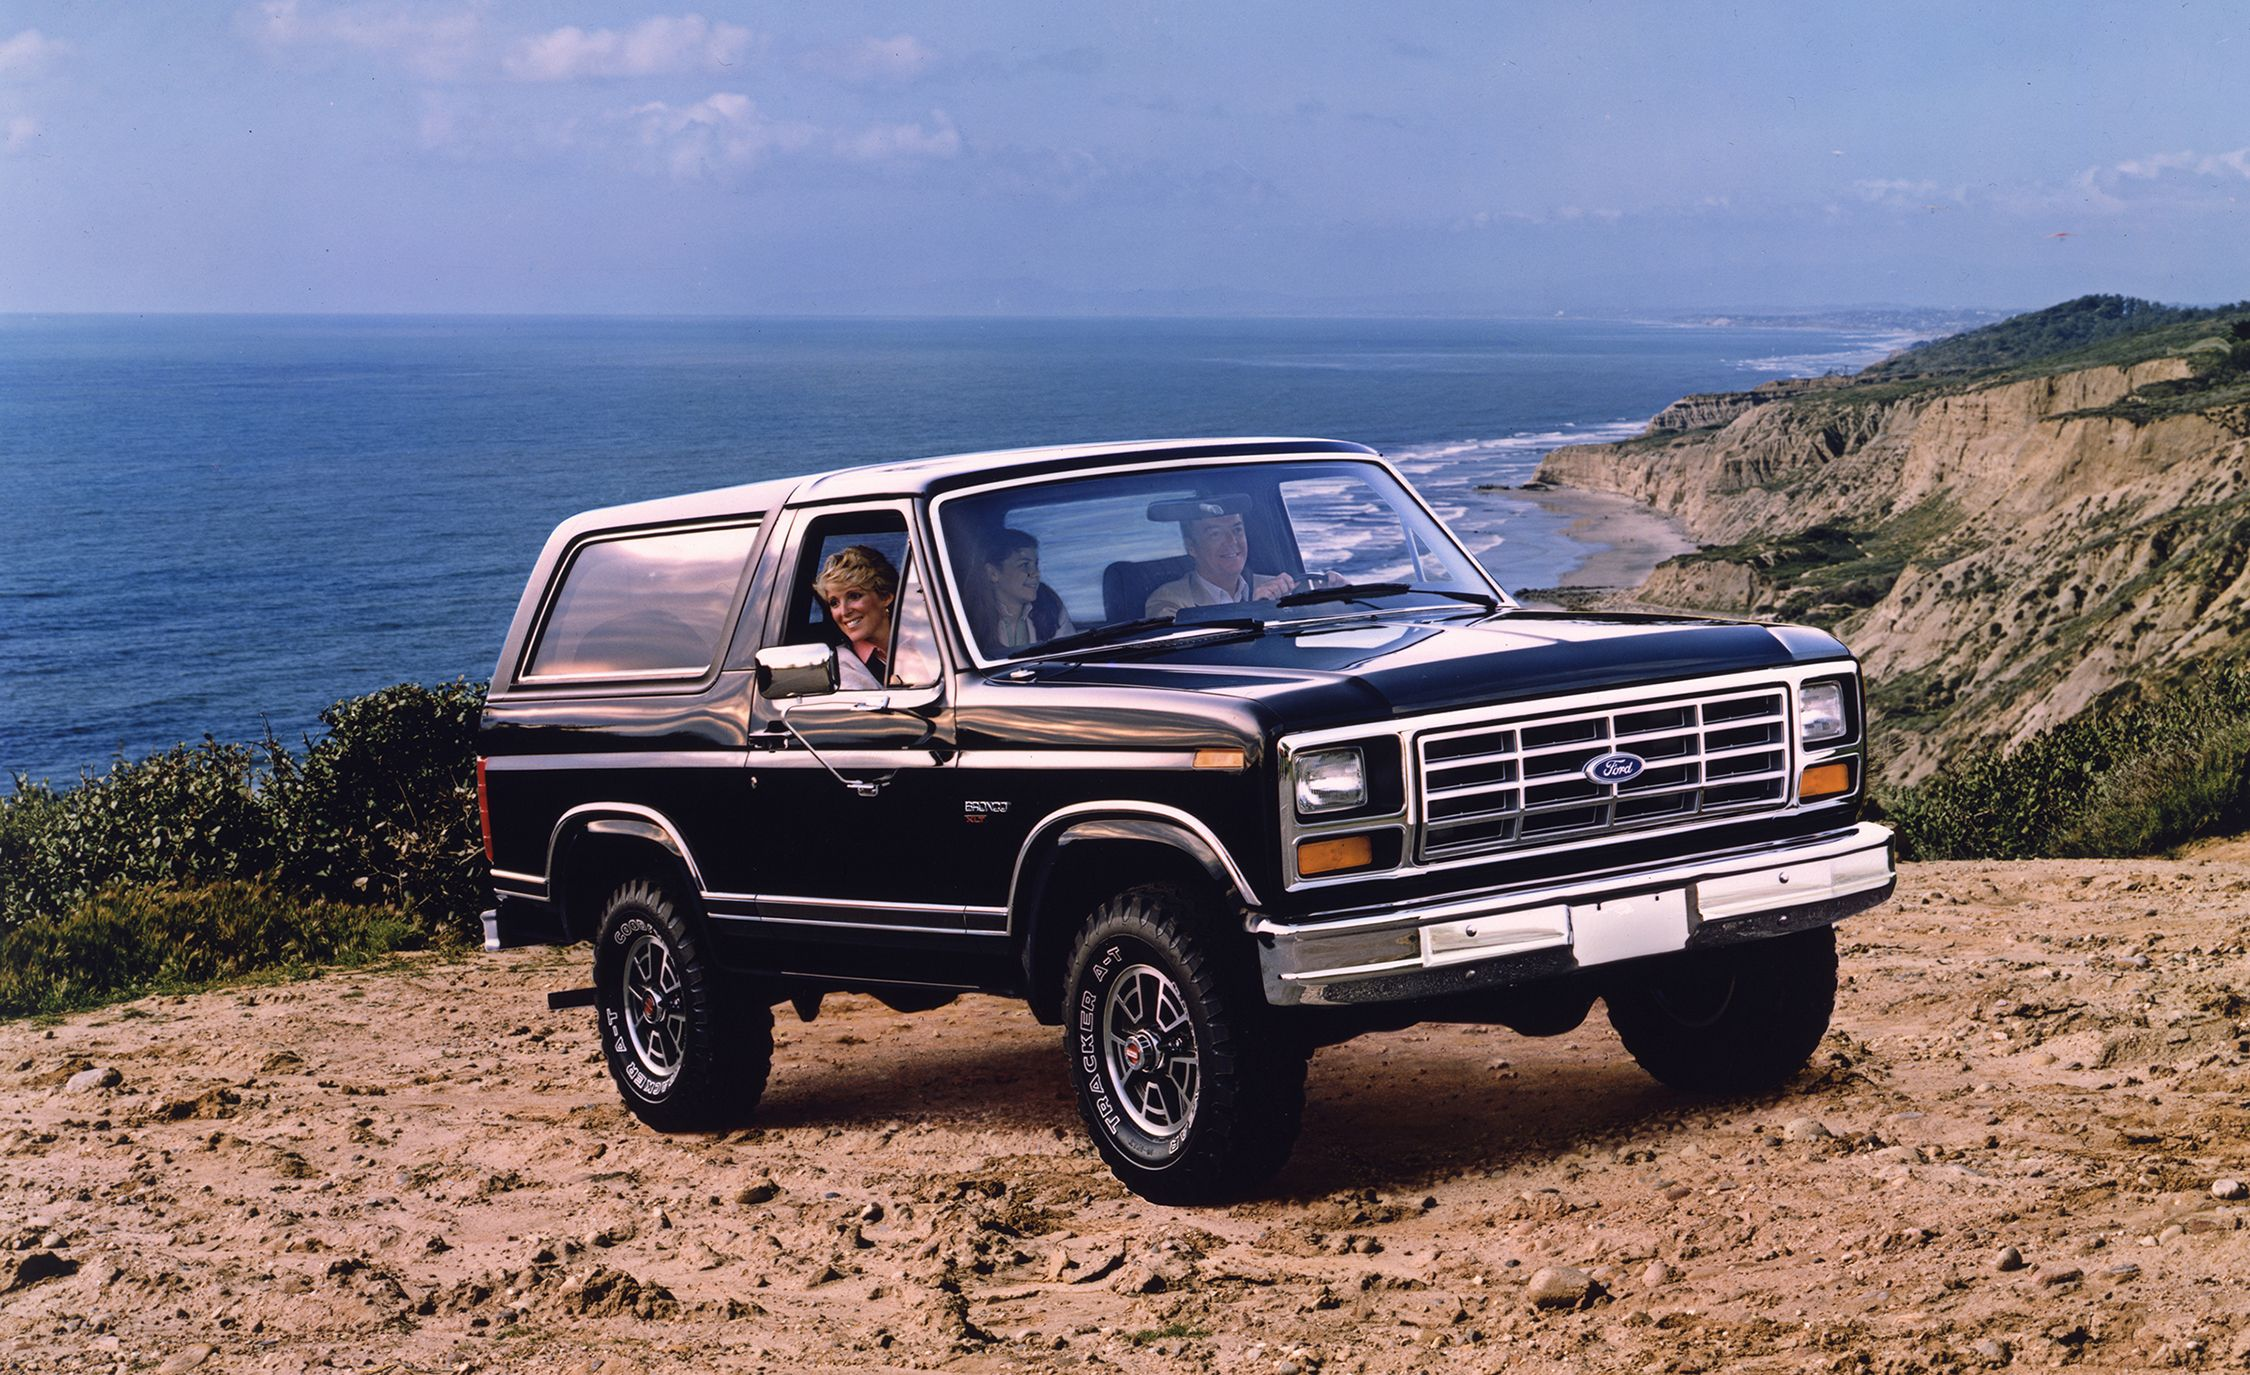 A Visual History Of The Ford Bronco From Trail Crawling To Slow 1980 Ranger Speed Chases